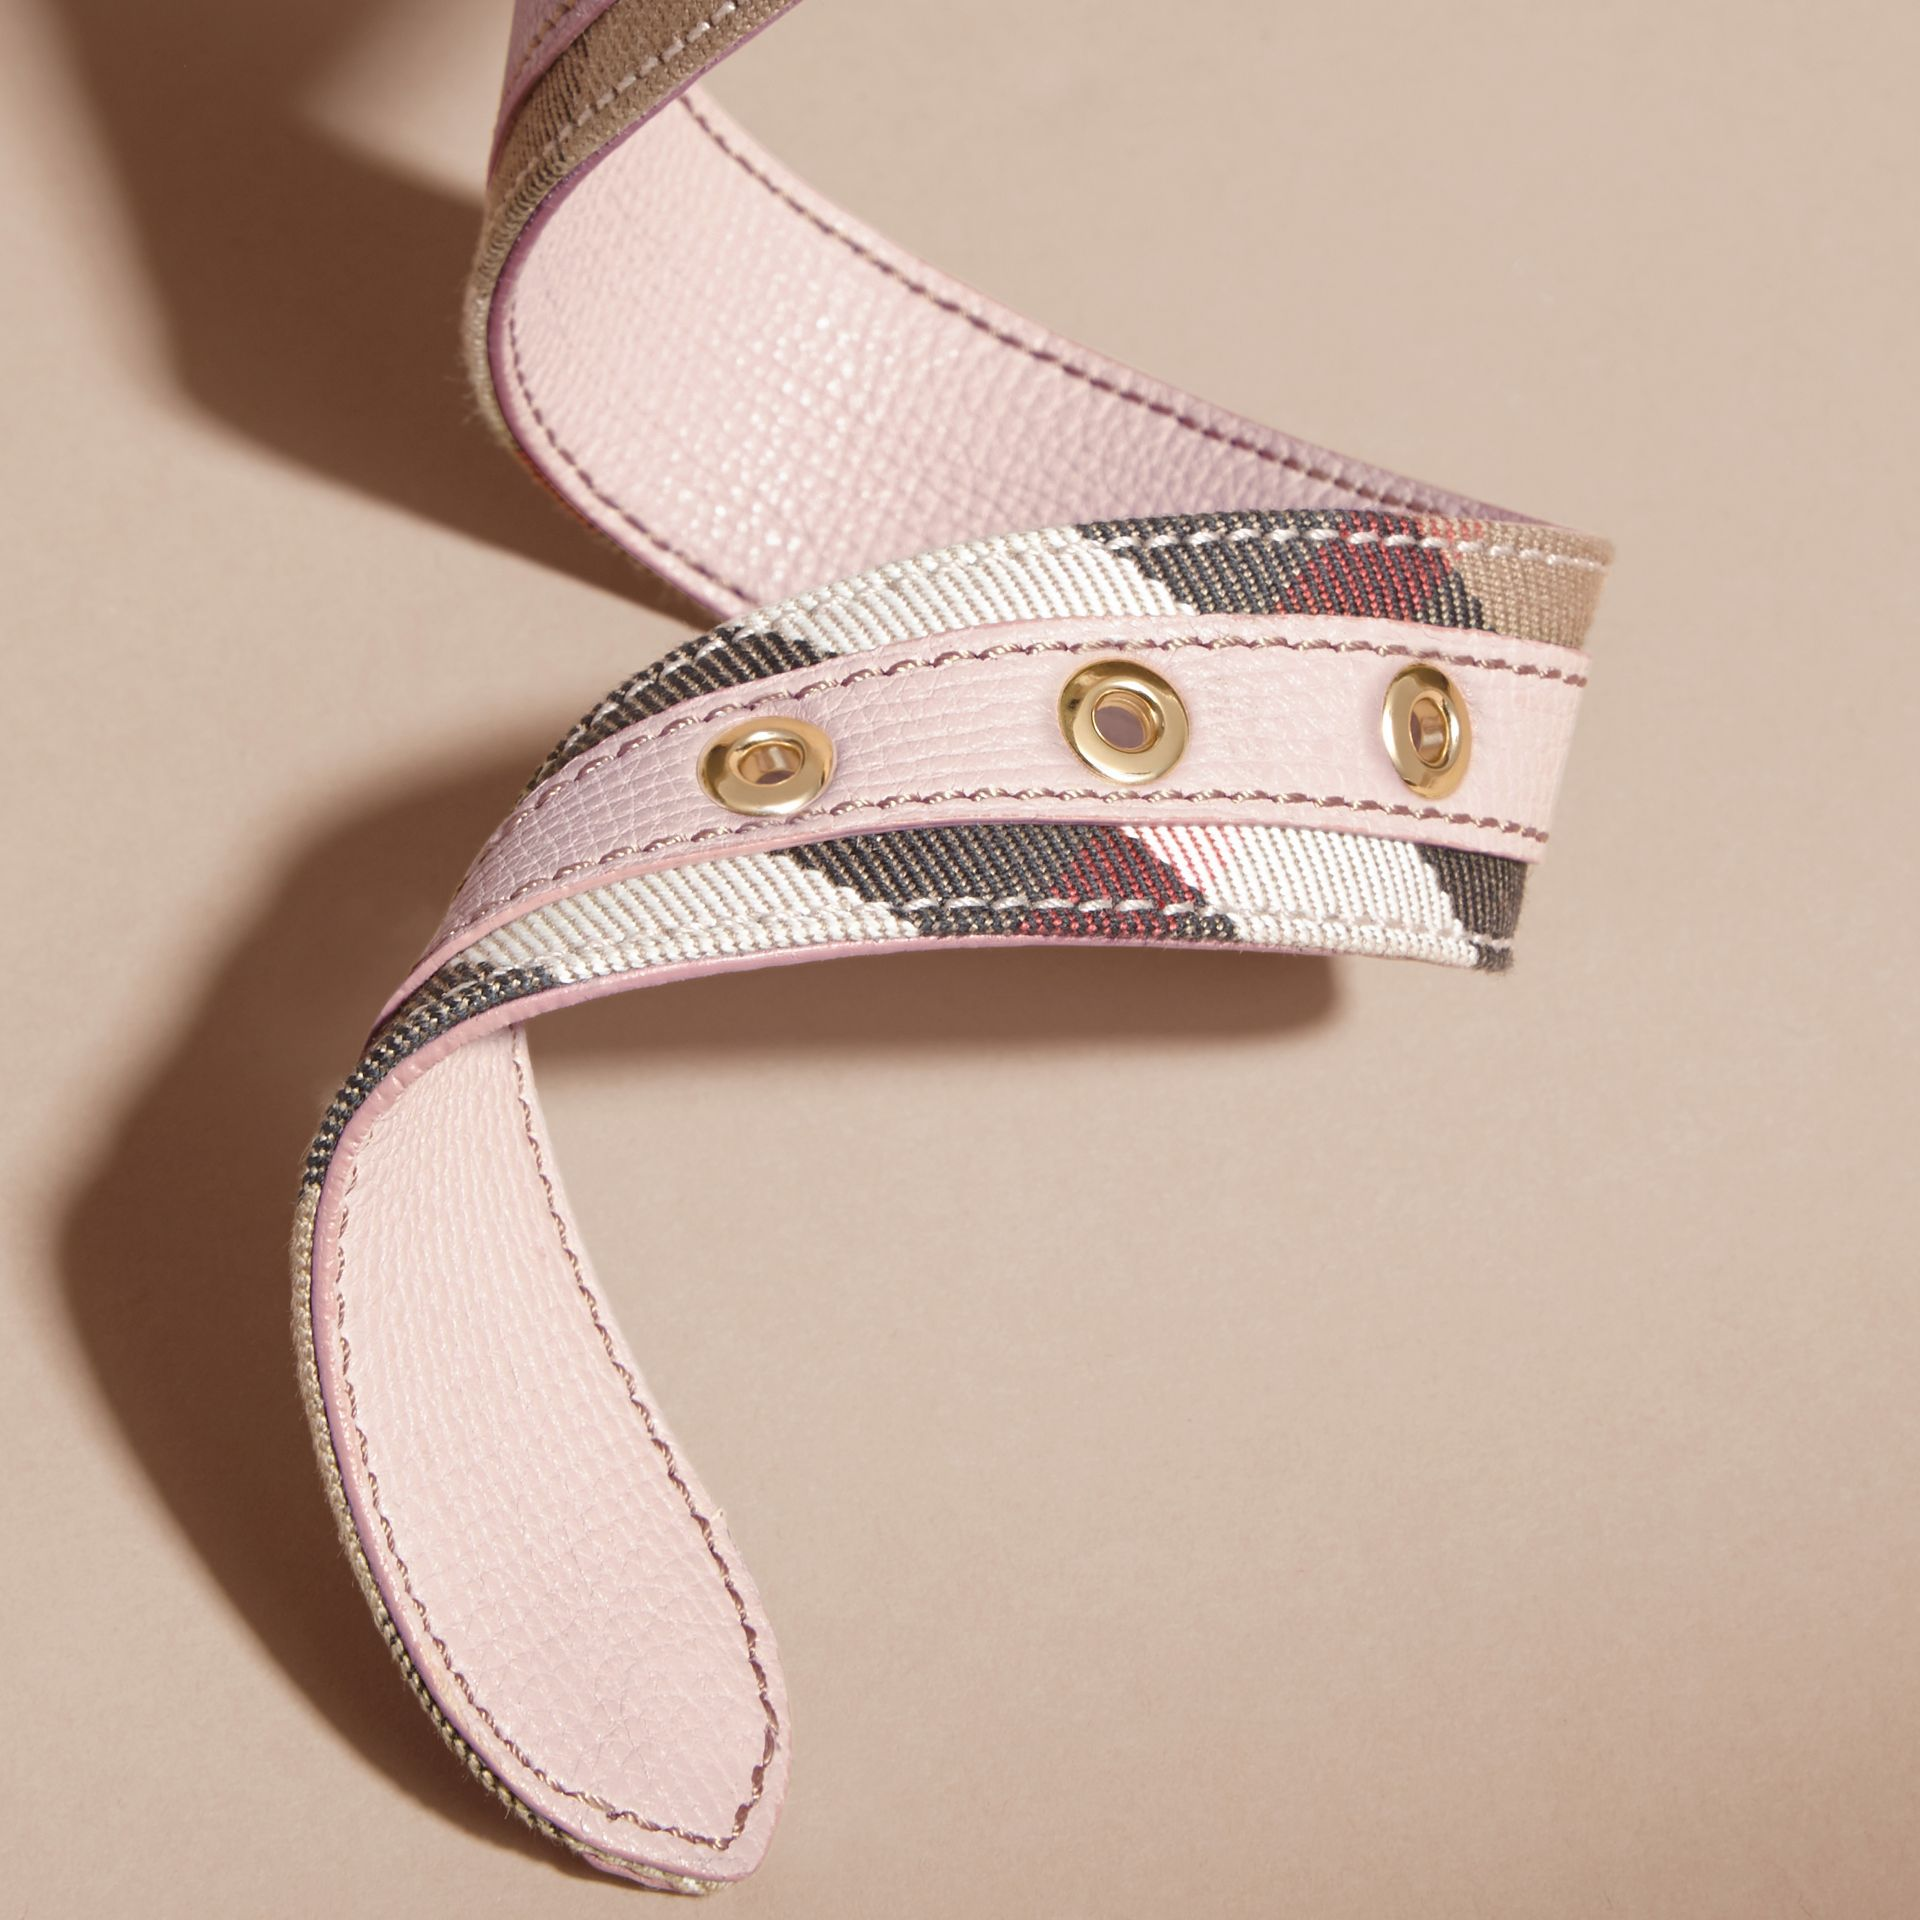 House Check and Grainy Leather Belt in Camel/pale Orchid - Women | Burberry - gallery image 3